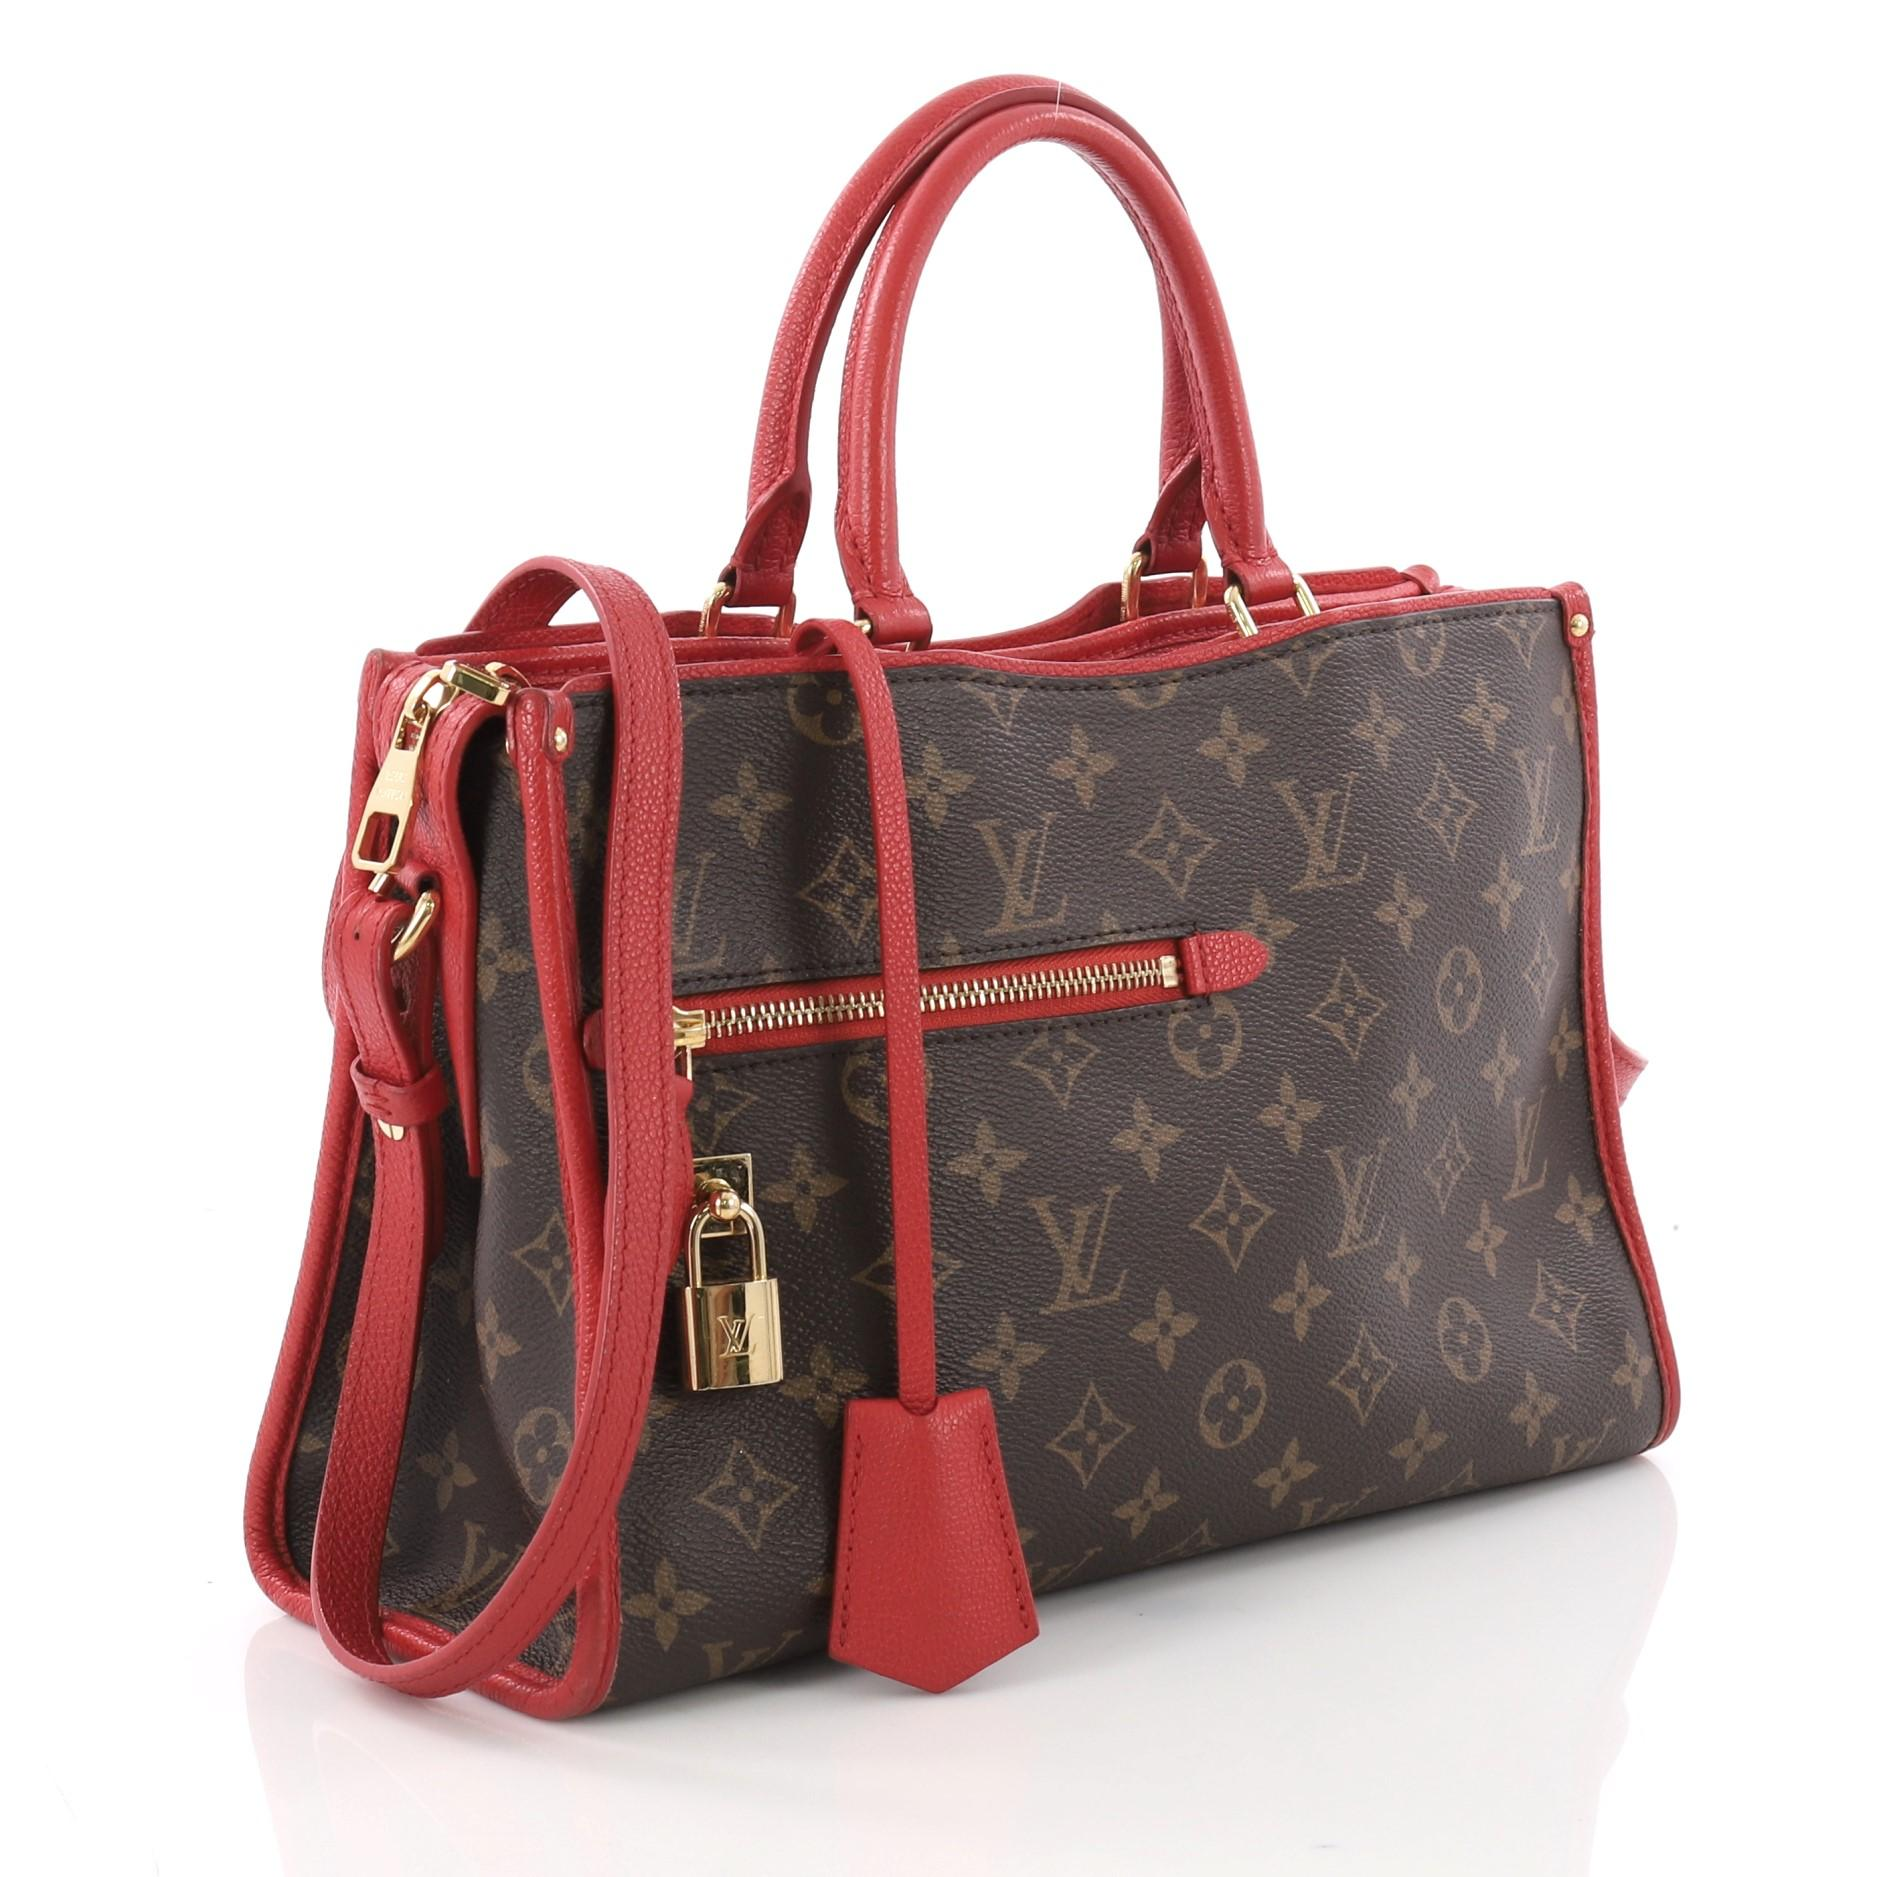 d093e8aa4f25 Louis Vuitton Popincourt NM Handbag Monogram Canvas PM at 1stdibs